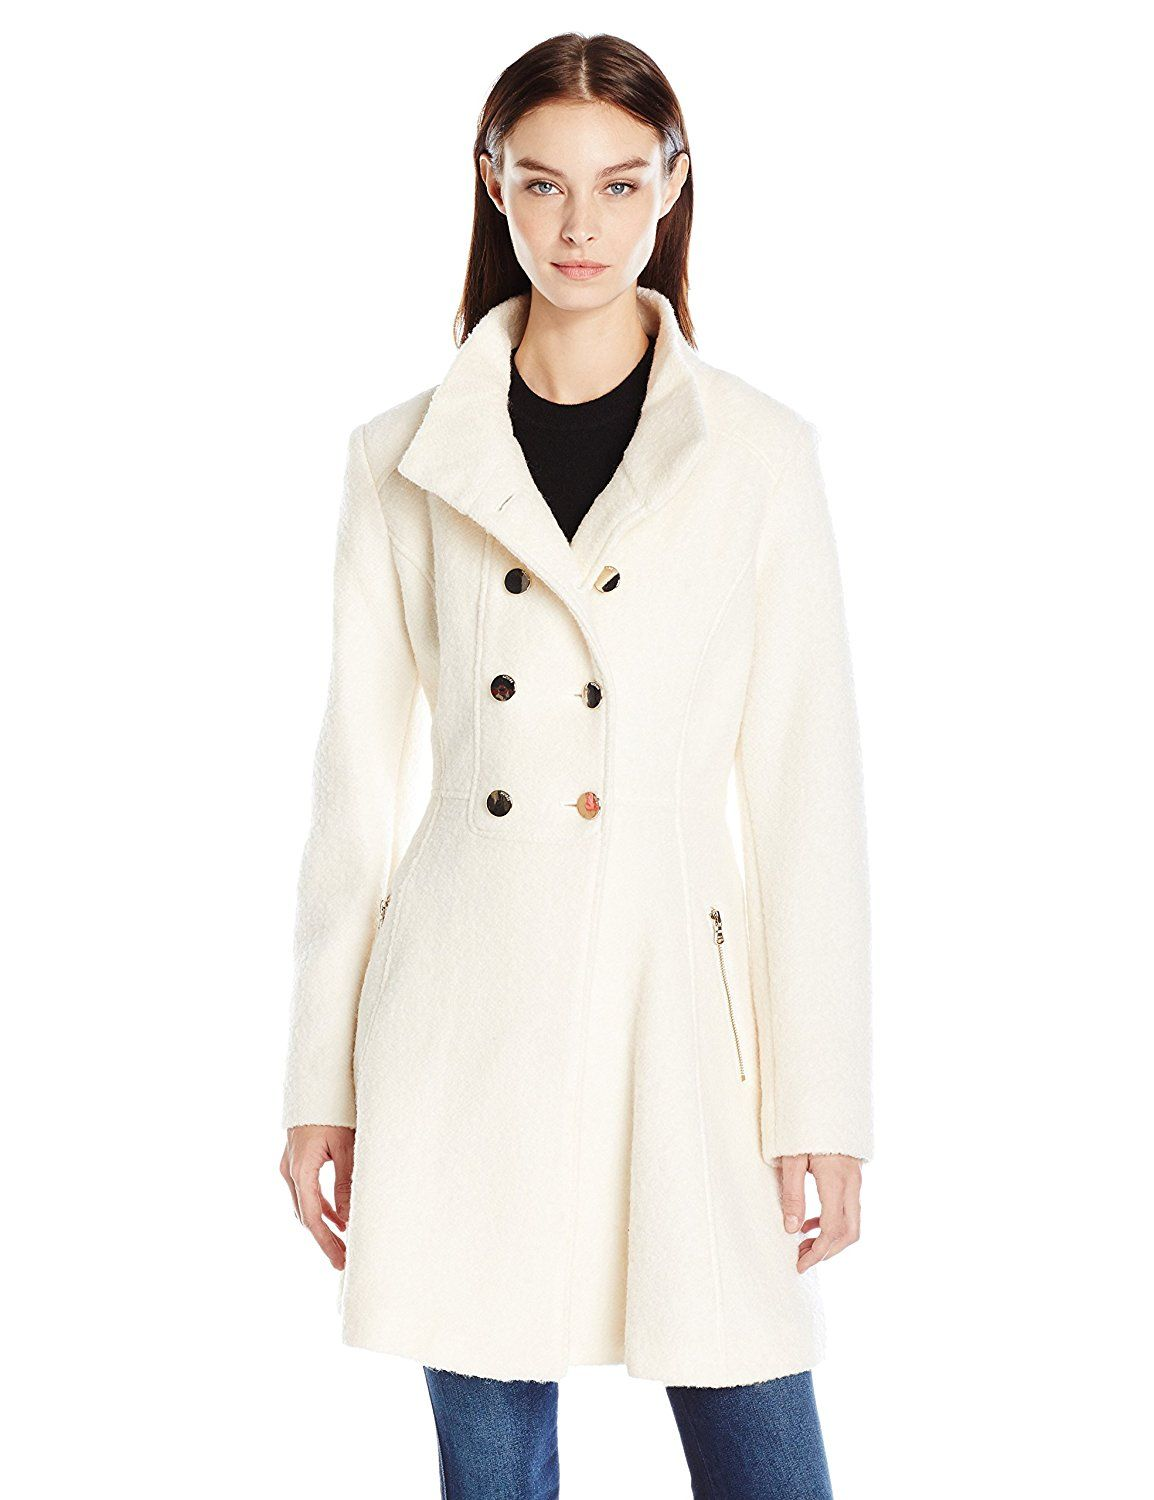 dce6e167c GUESS Women's Wool Boucle Military Flared Coat -- Click image for ...